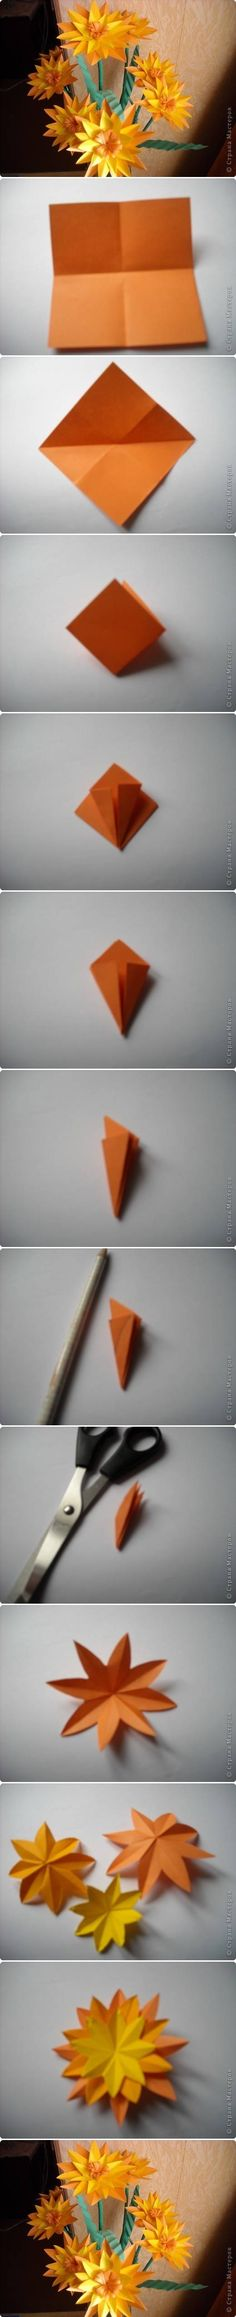 DIY Paper Marigold Flower Pictures, Photos, and Images for Facebook, Tumblr, Pinterest, and Twitter